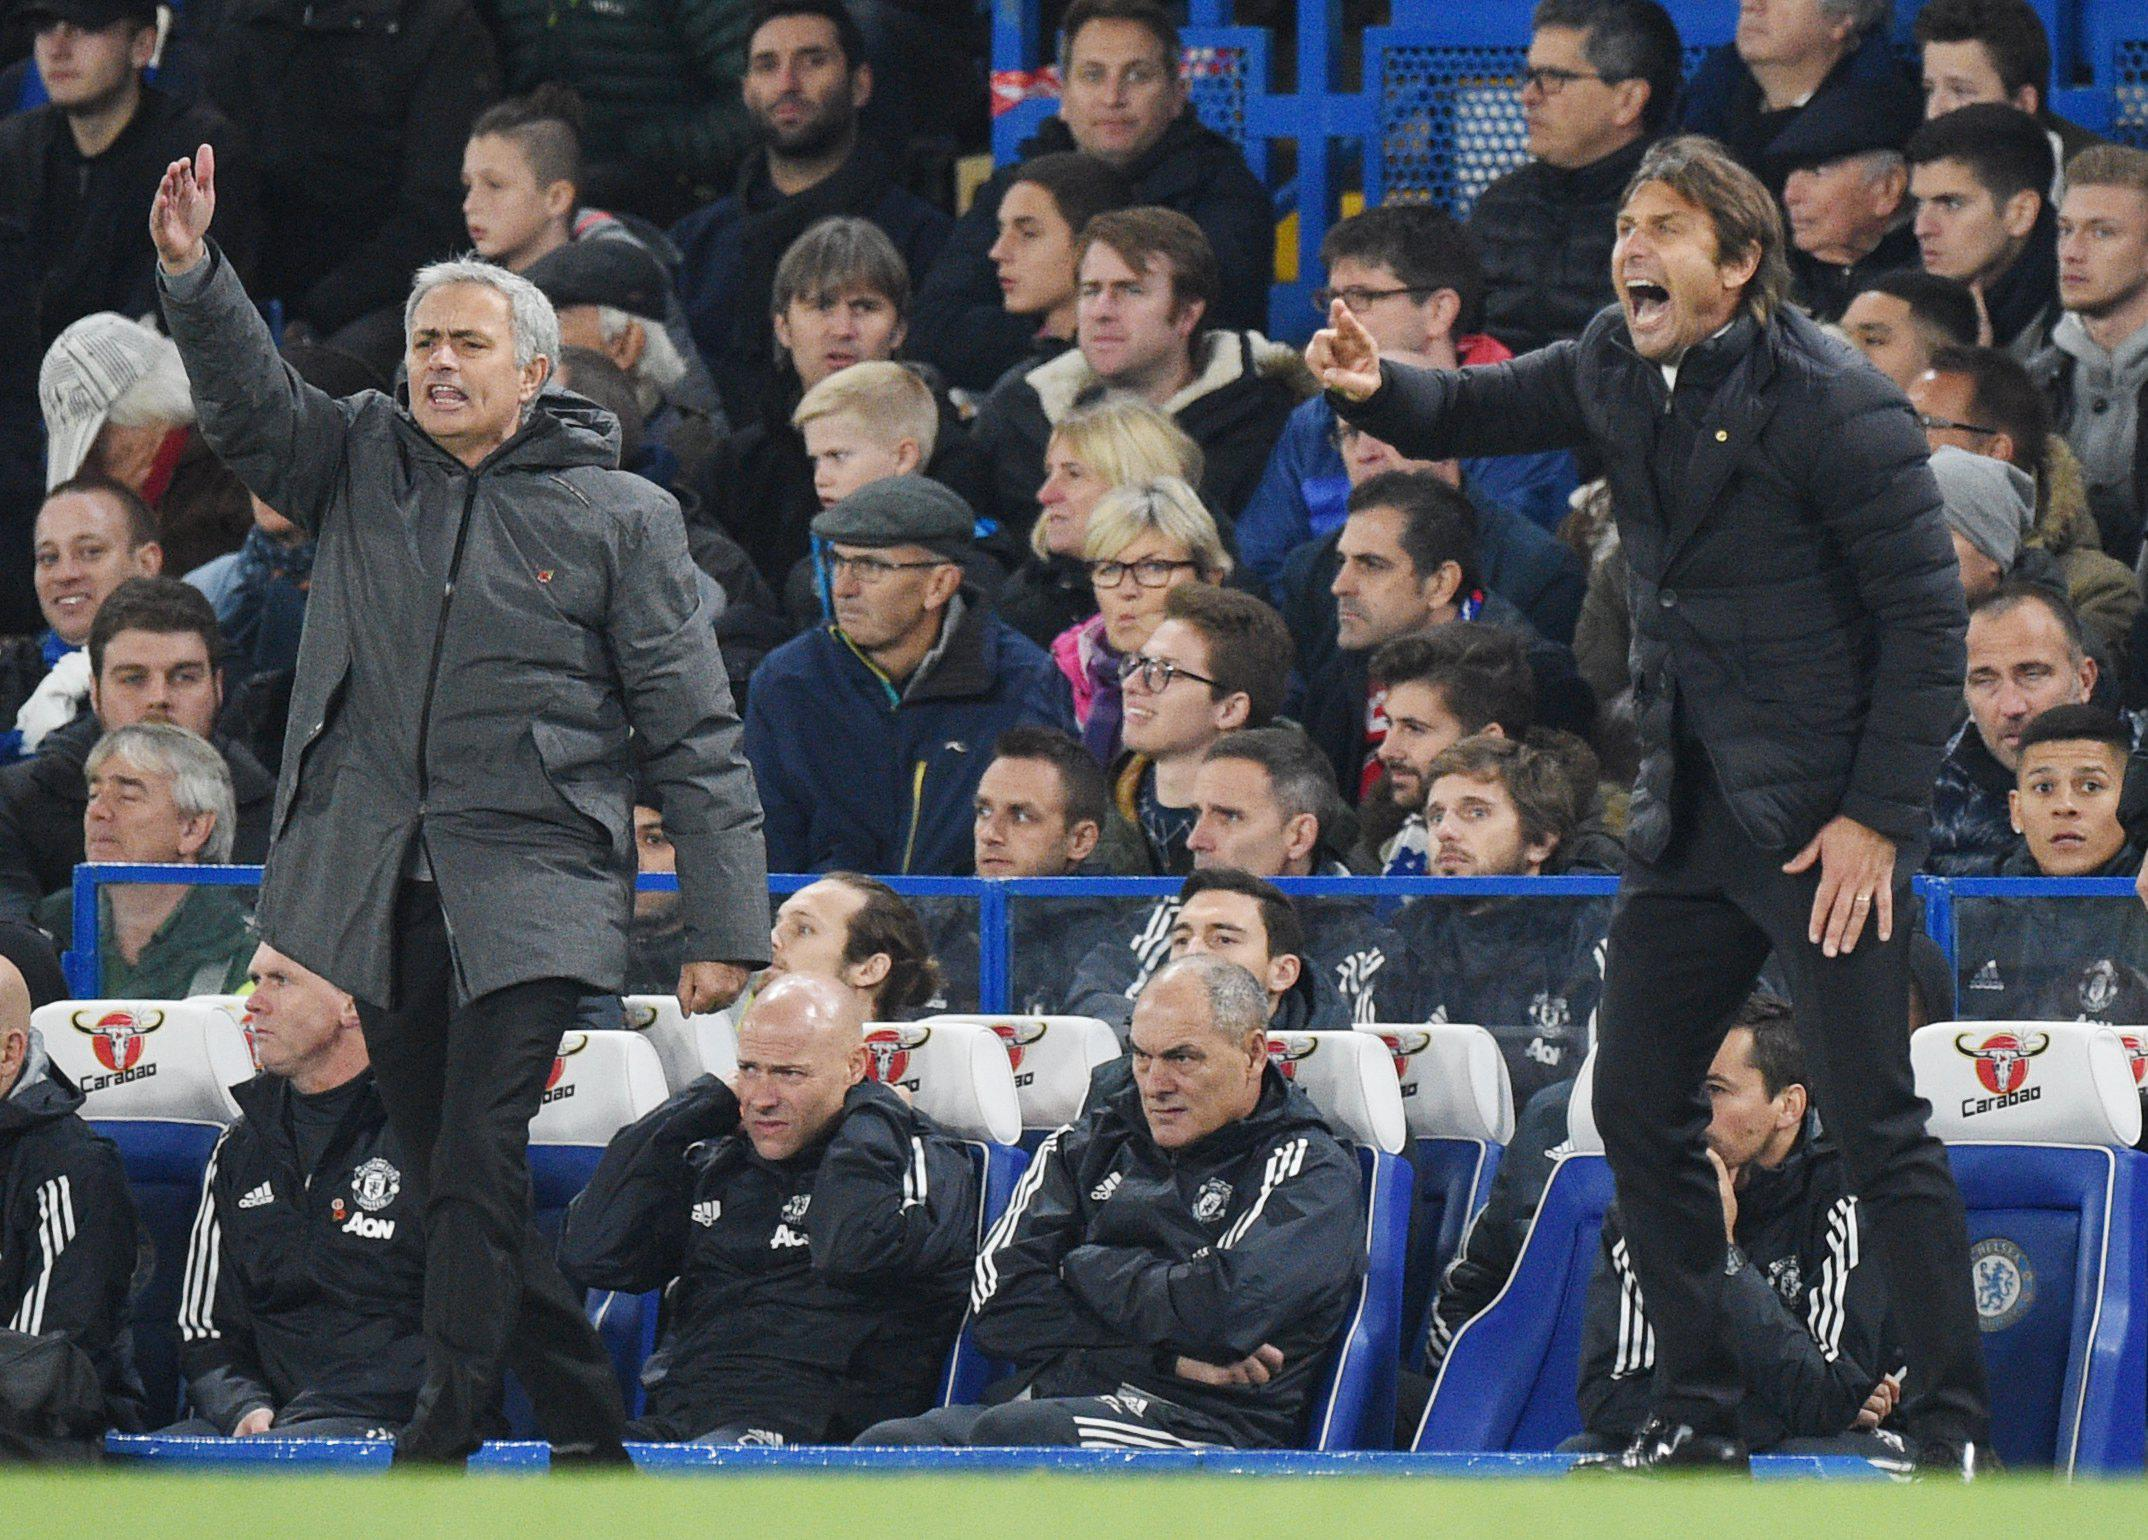 It was not a happy return to Stamford Bridge for the Special One